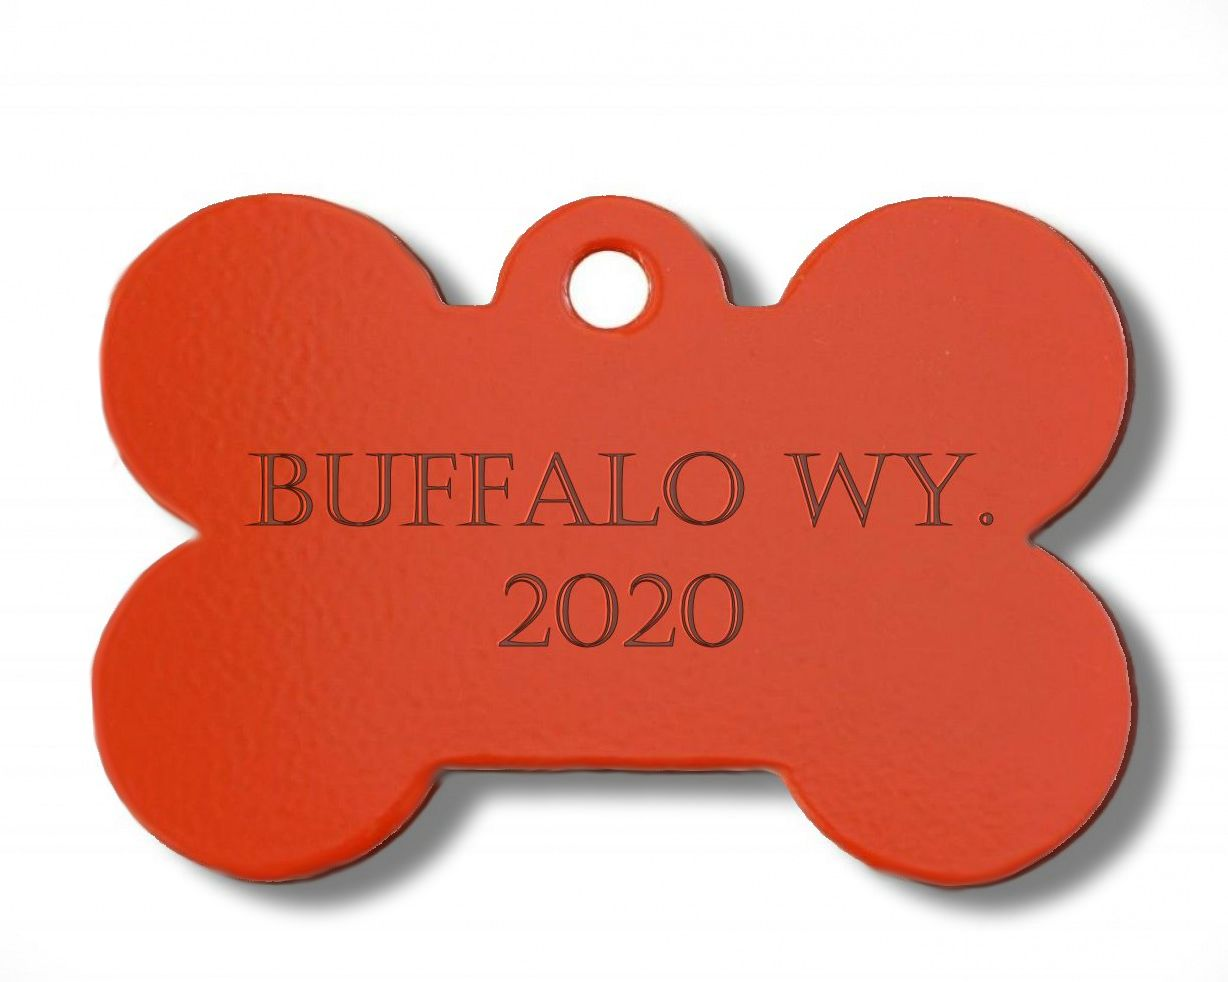 City License Tags - If residing within the city limits of Buffalo, all dogs MUST have a City License Tag.In order to obtain a City Tag, the dog MUST have proof of current Rabies vaccine. License includes one tag and is valid for two years.Altered: $10.00Unaltered: $20.00